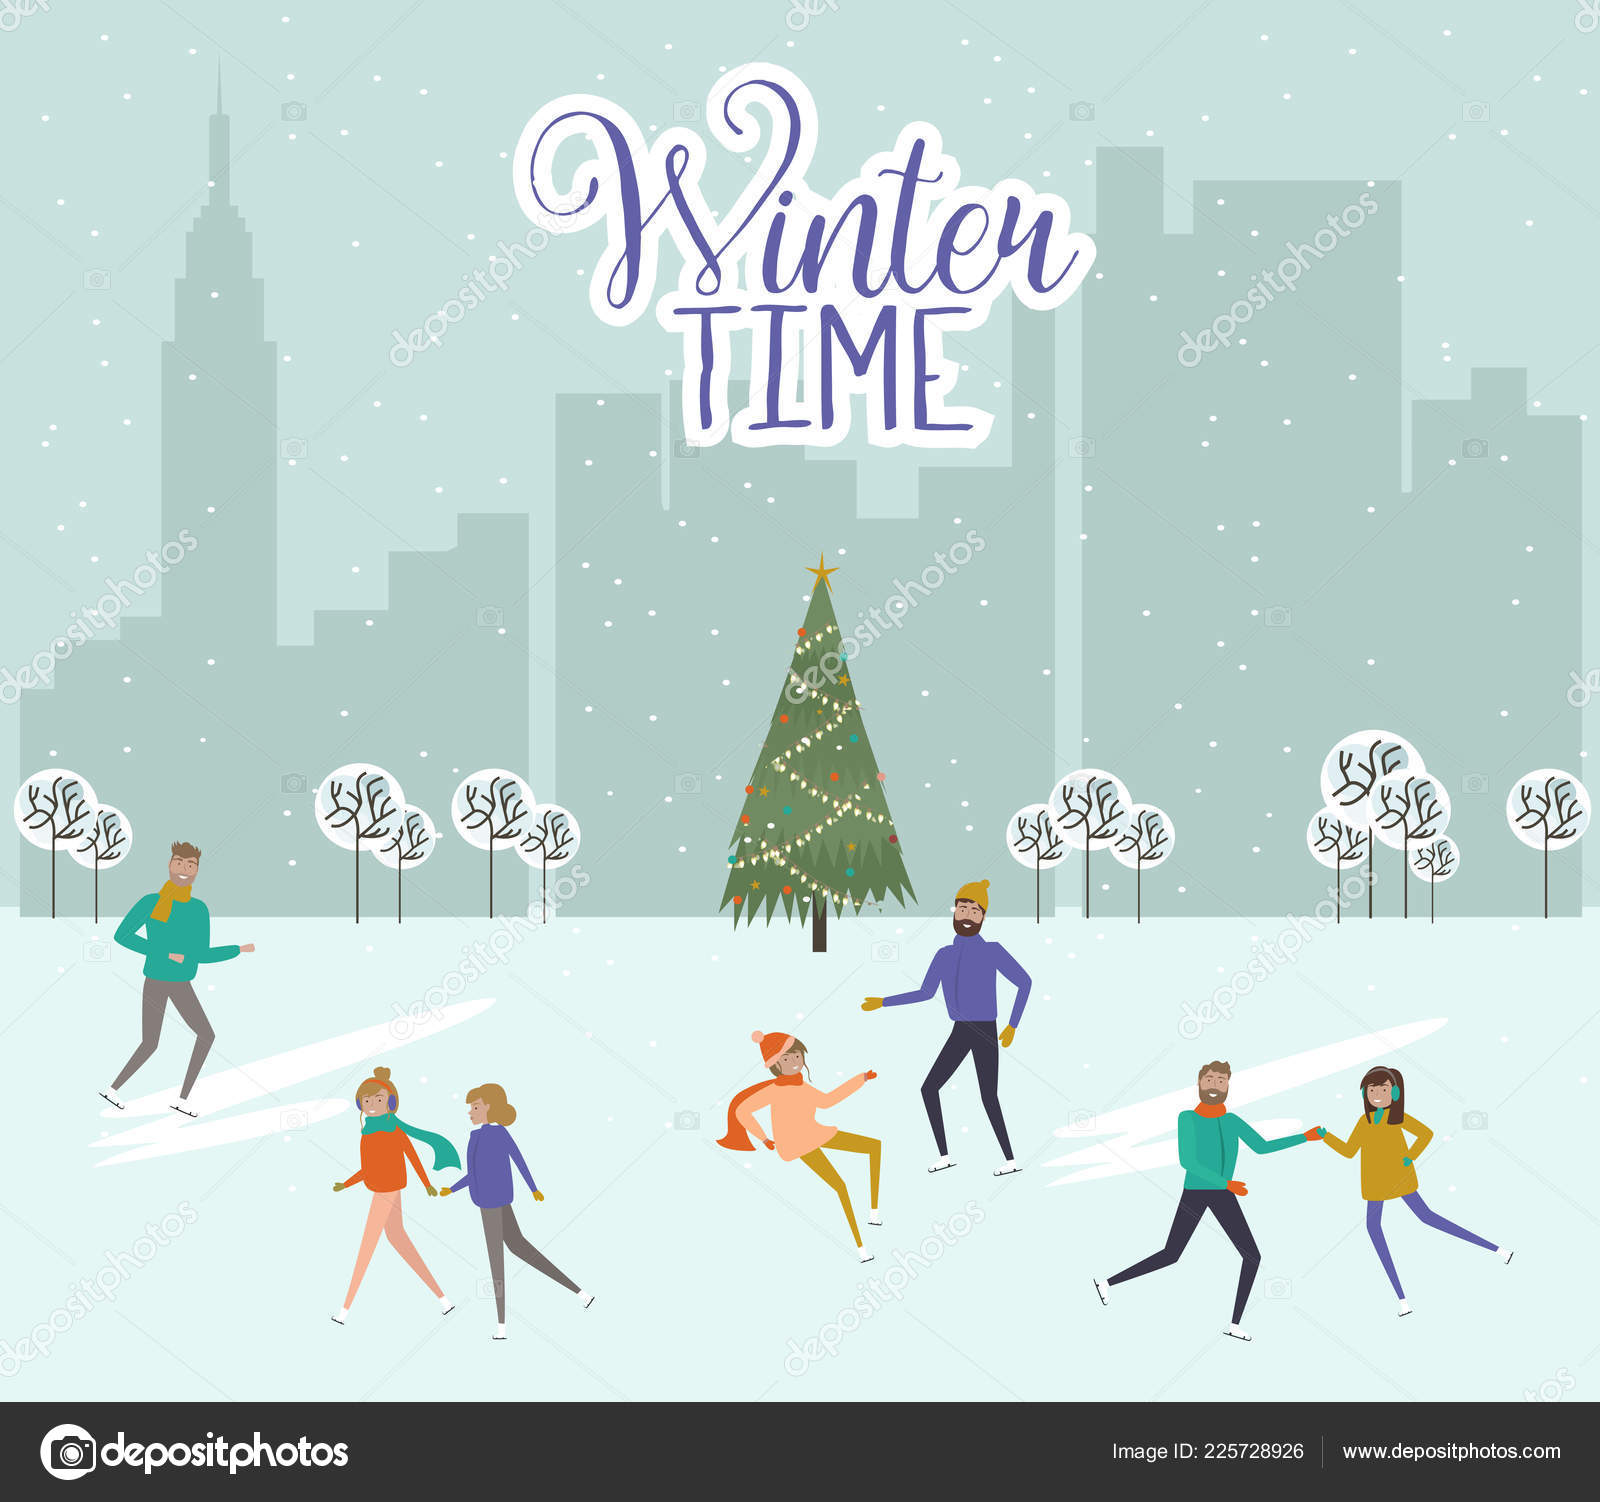 merry christmas happy new year template people ice skating winter stock vector